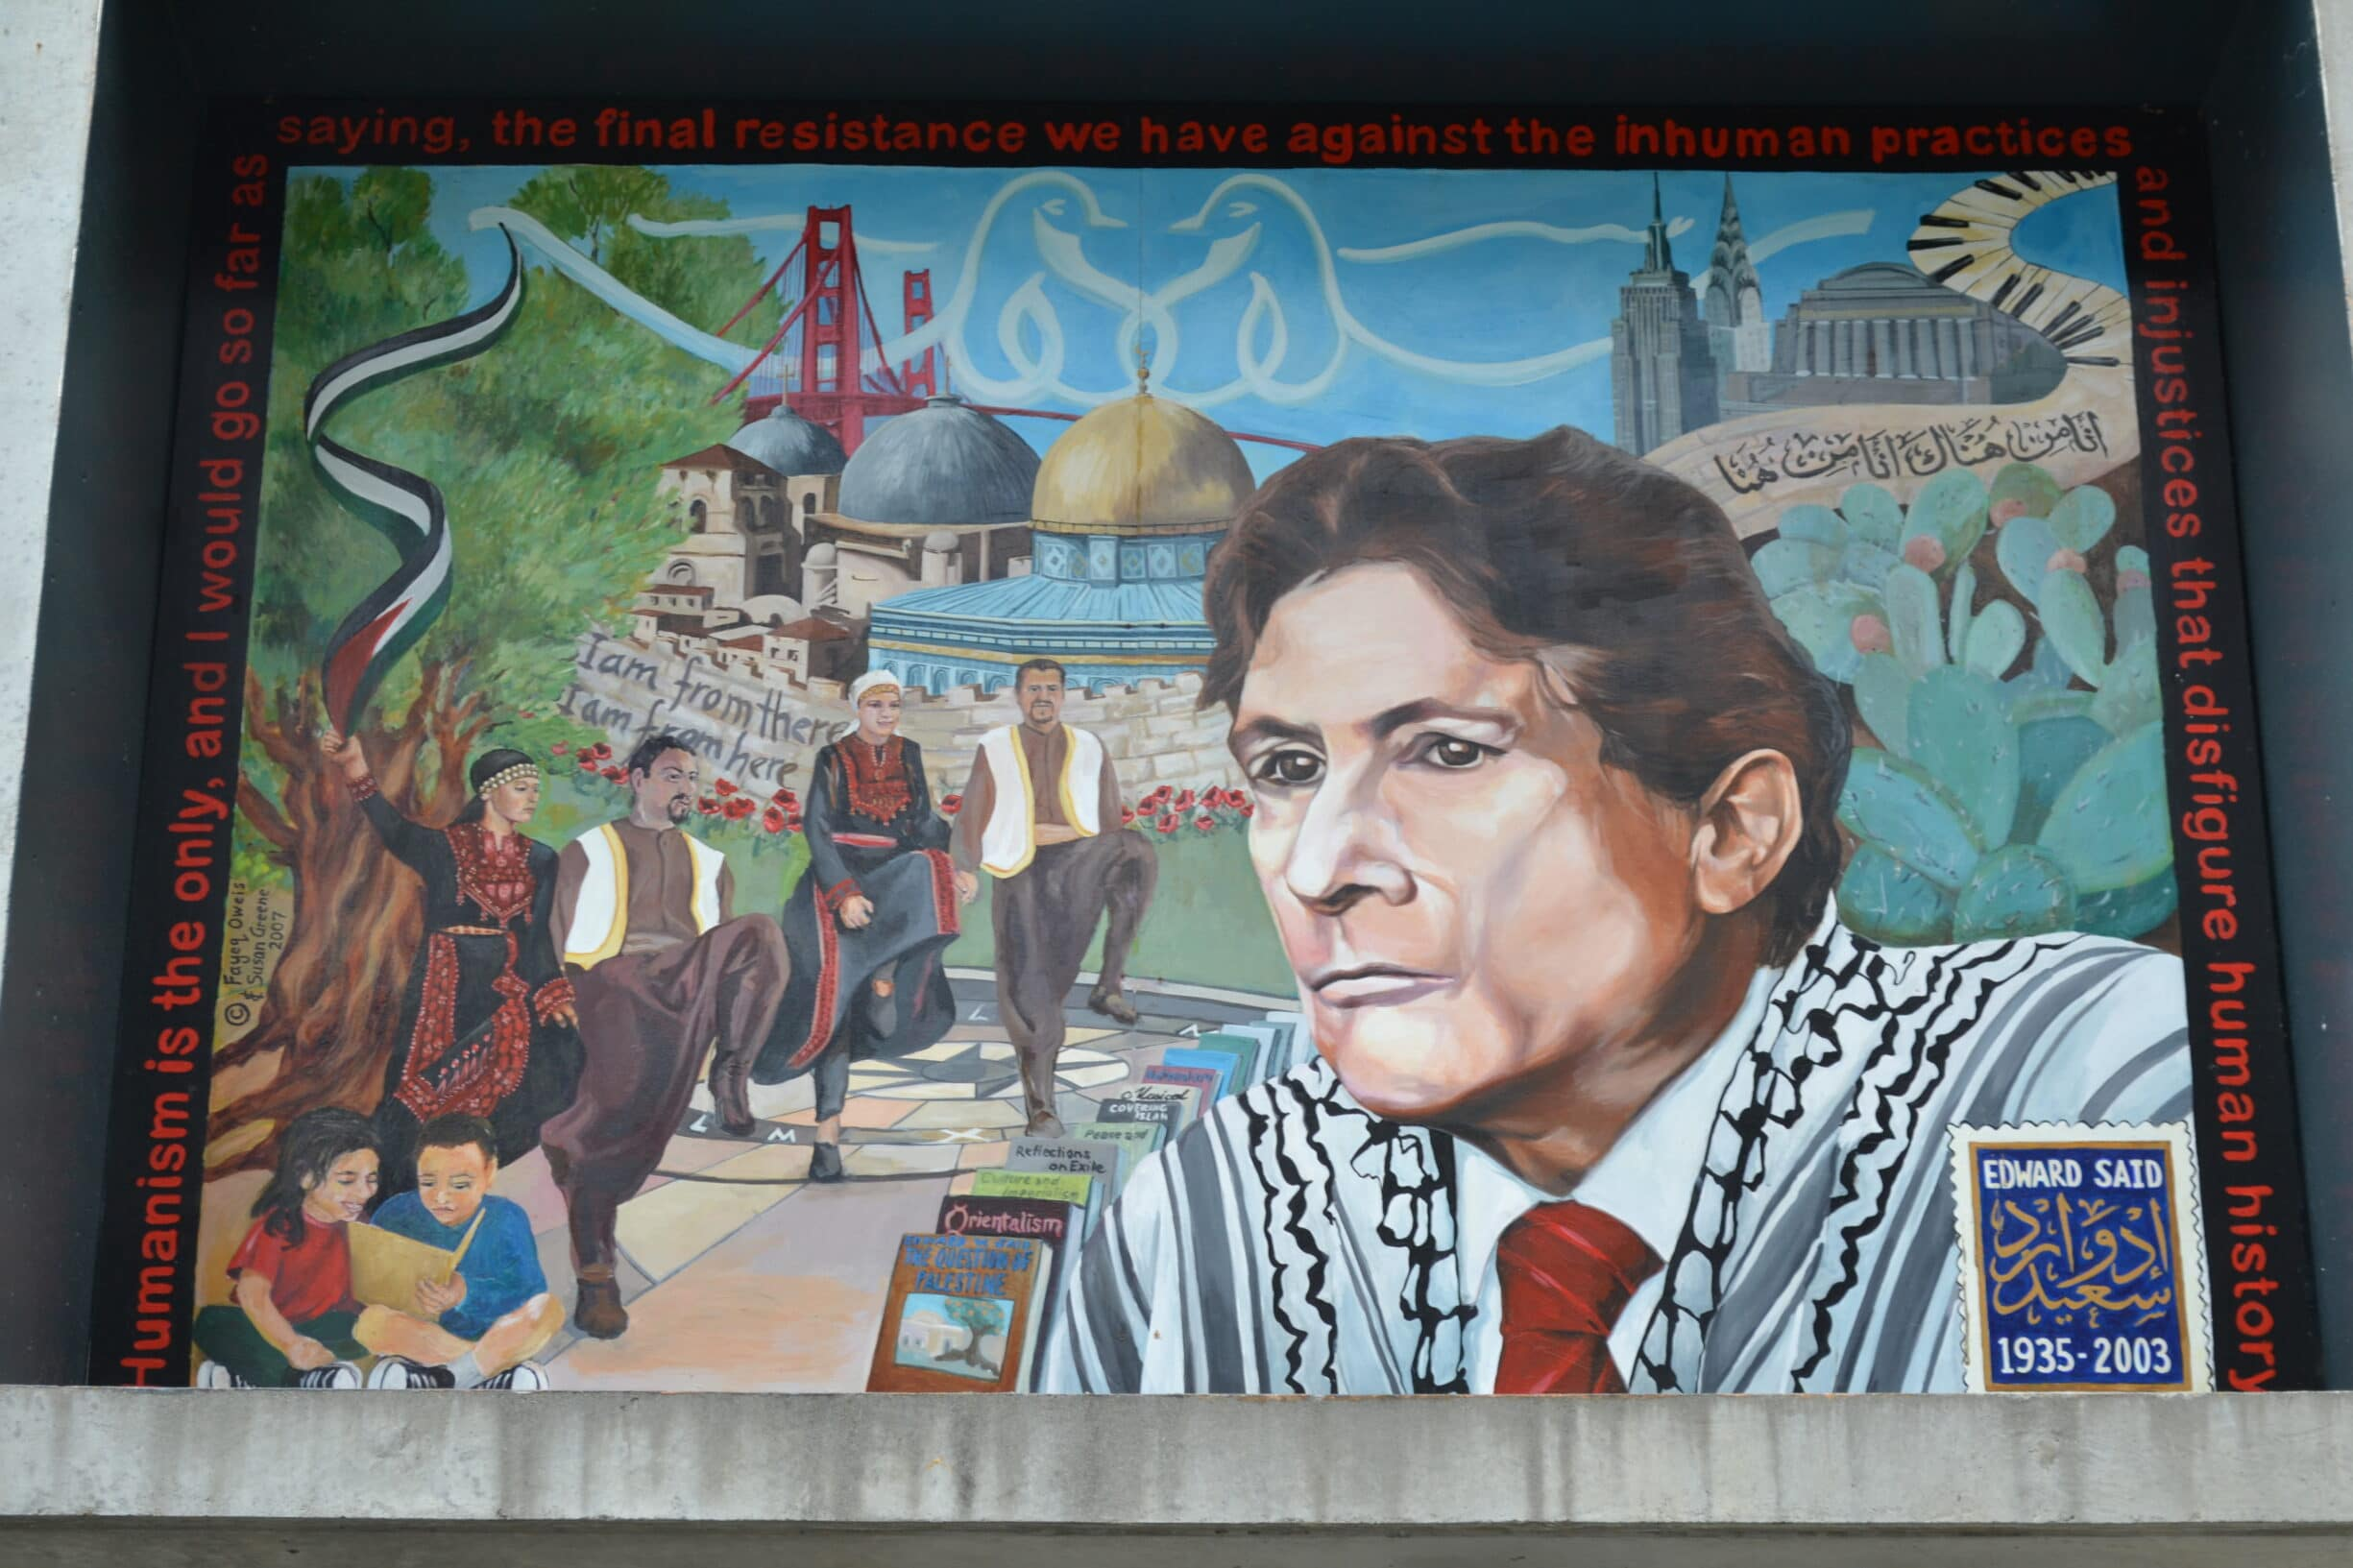 Edward Said Mural was unveiled at San Francisco State University (SFSU) on November 2nd 2007. This is the first mural of its kind to be unveiled at any American University ... Photo: Taken 27 July 2012 by Briantrejo. (CC BY-SA 3.0).